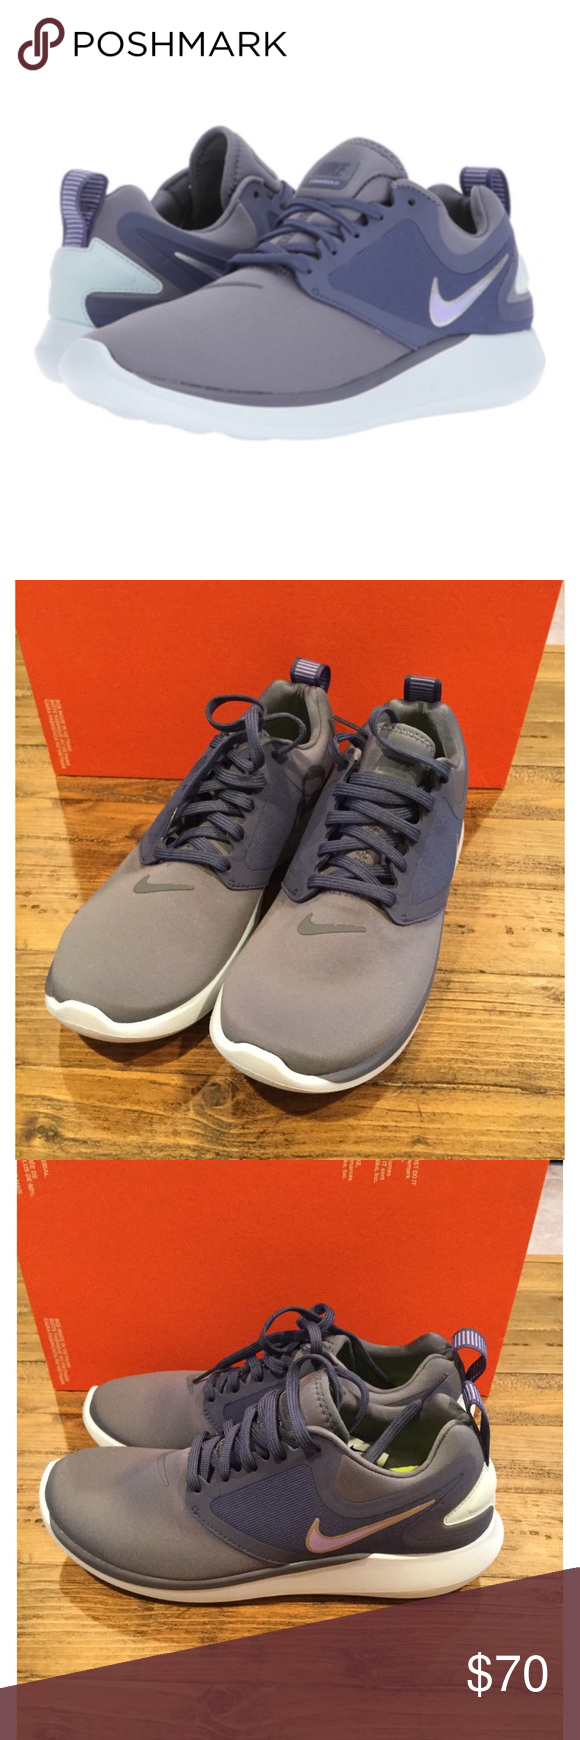 best sneakers a9ade 2ad95 NEW Nike lunarsolo size 7.5 Brand new women s Nike Lunarsolo sneakers size  7.5. Color is called light carbon. Purple grayish blue color. Perfect for  running ...